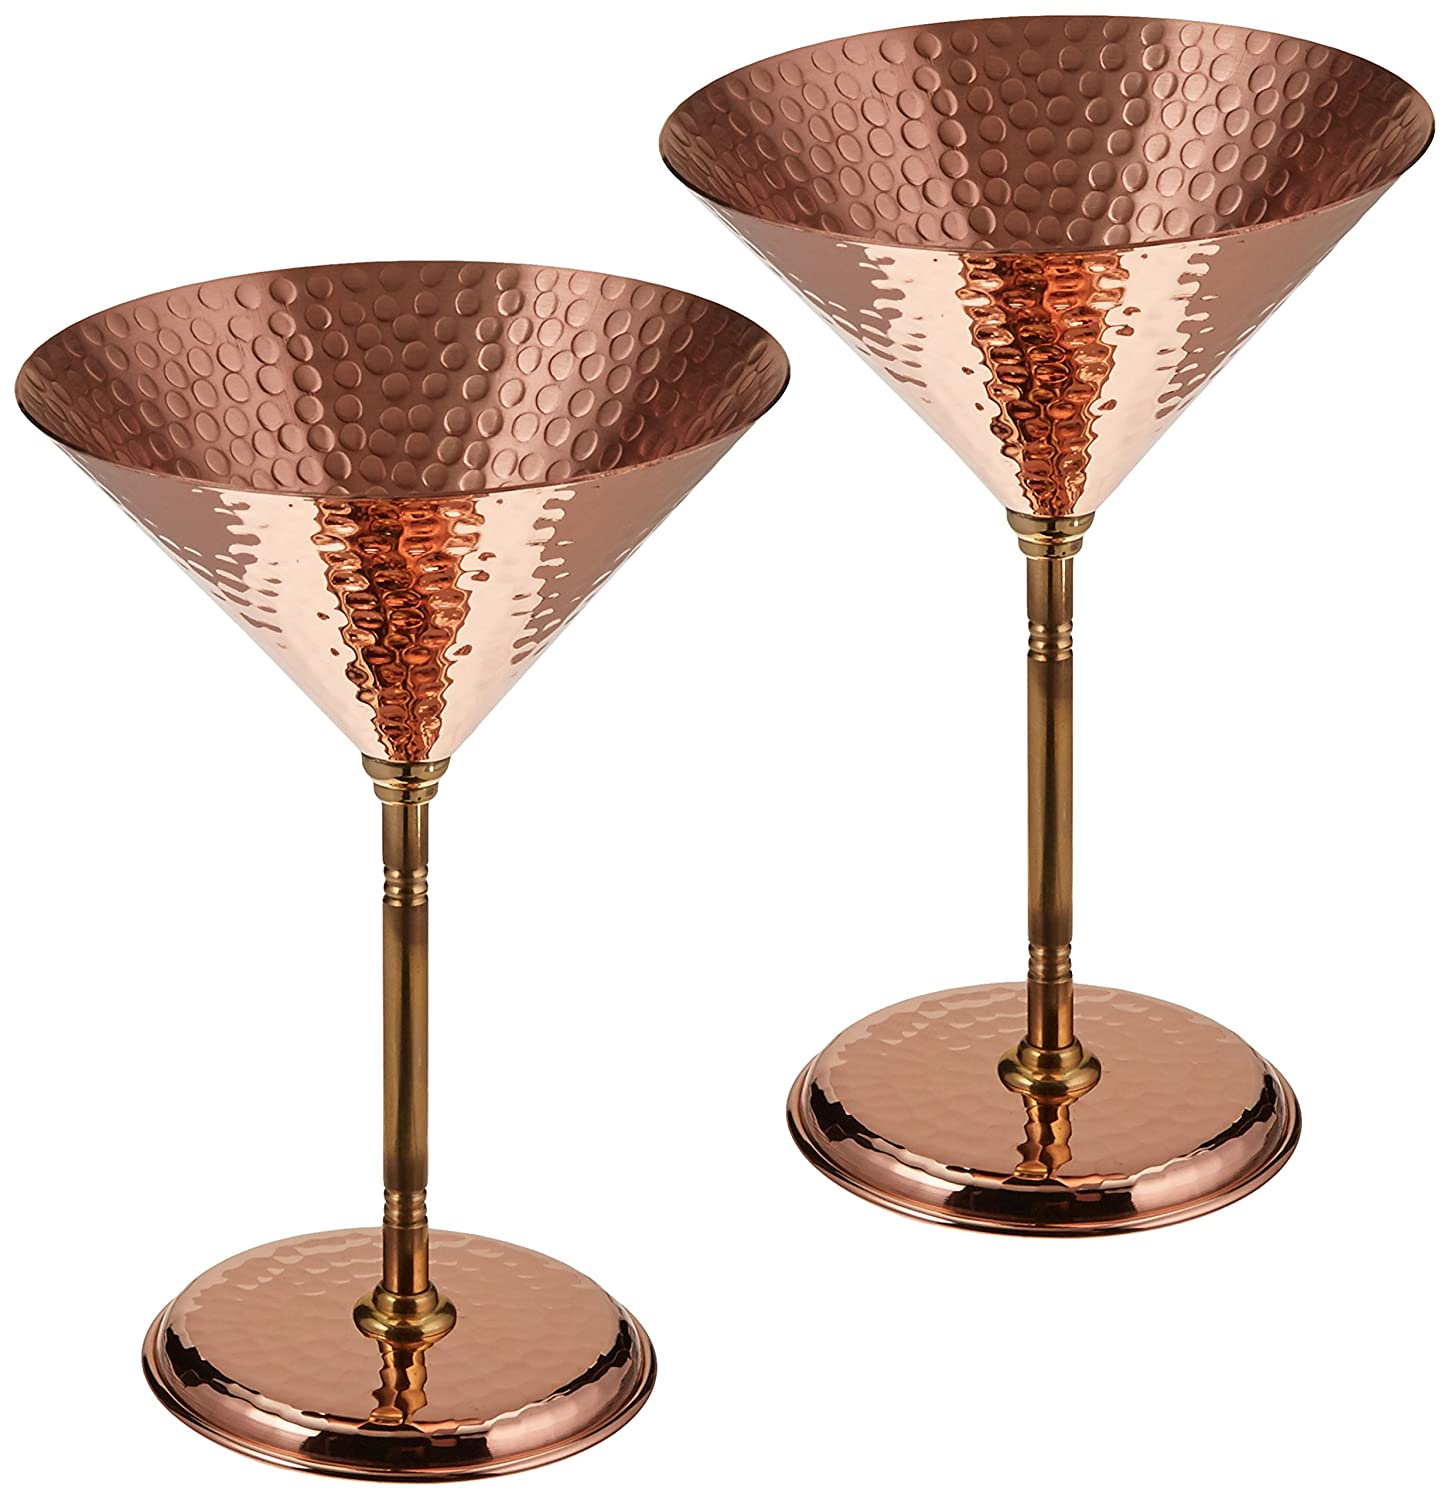 2 X CopperBull Gorgeous Hammered Copper Martini Goblets Glasses, 10 Ounces (Unlined Copper)